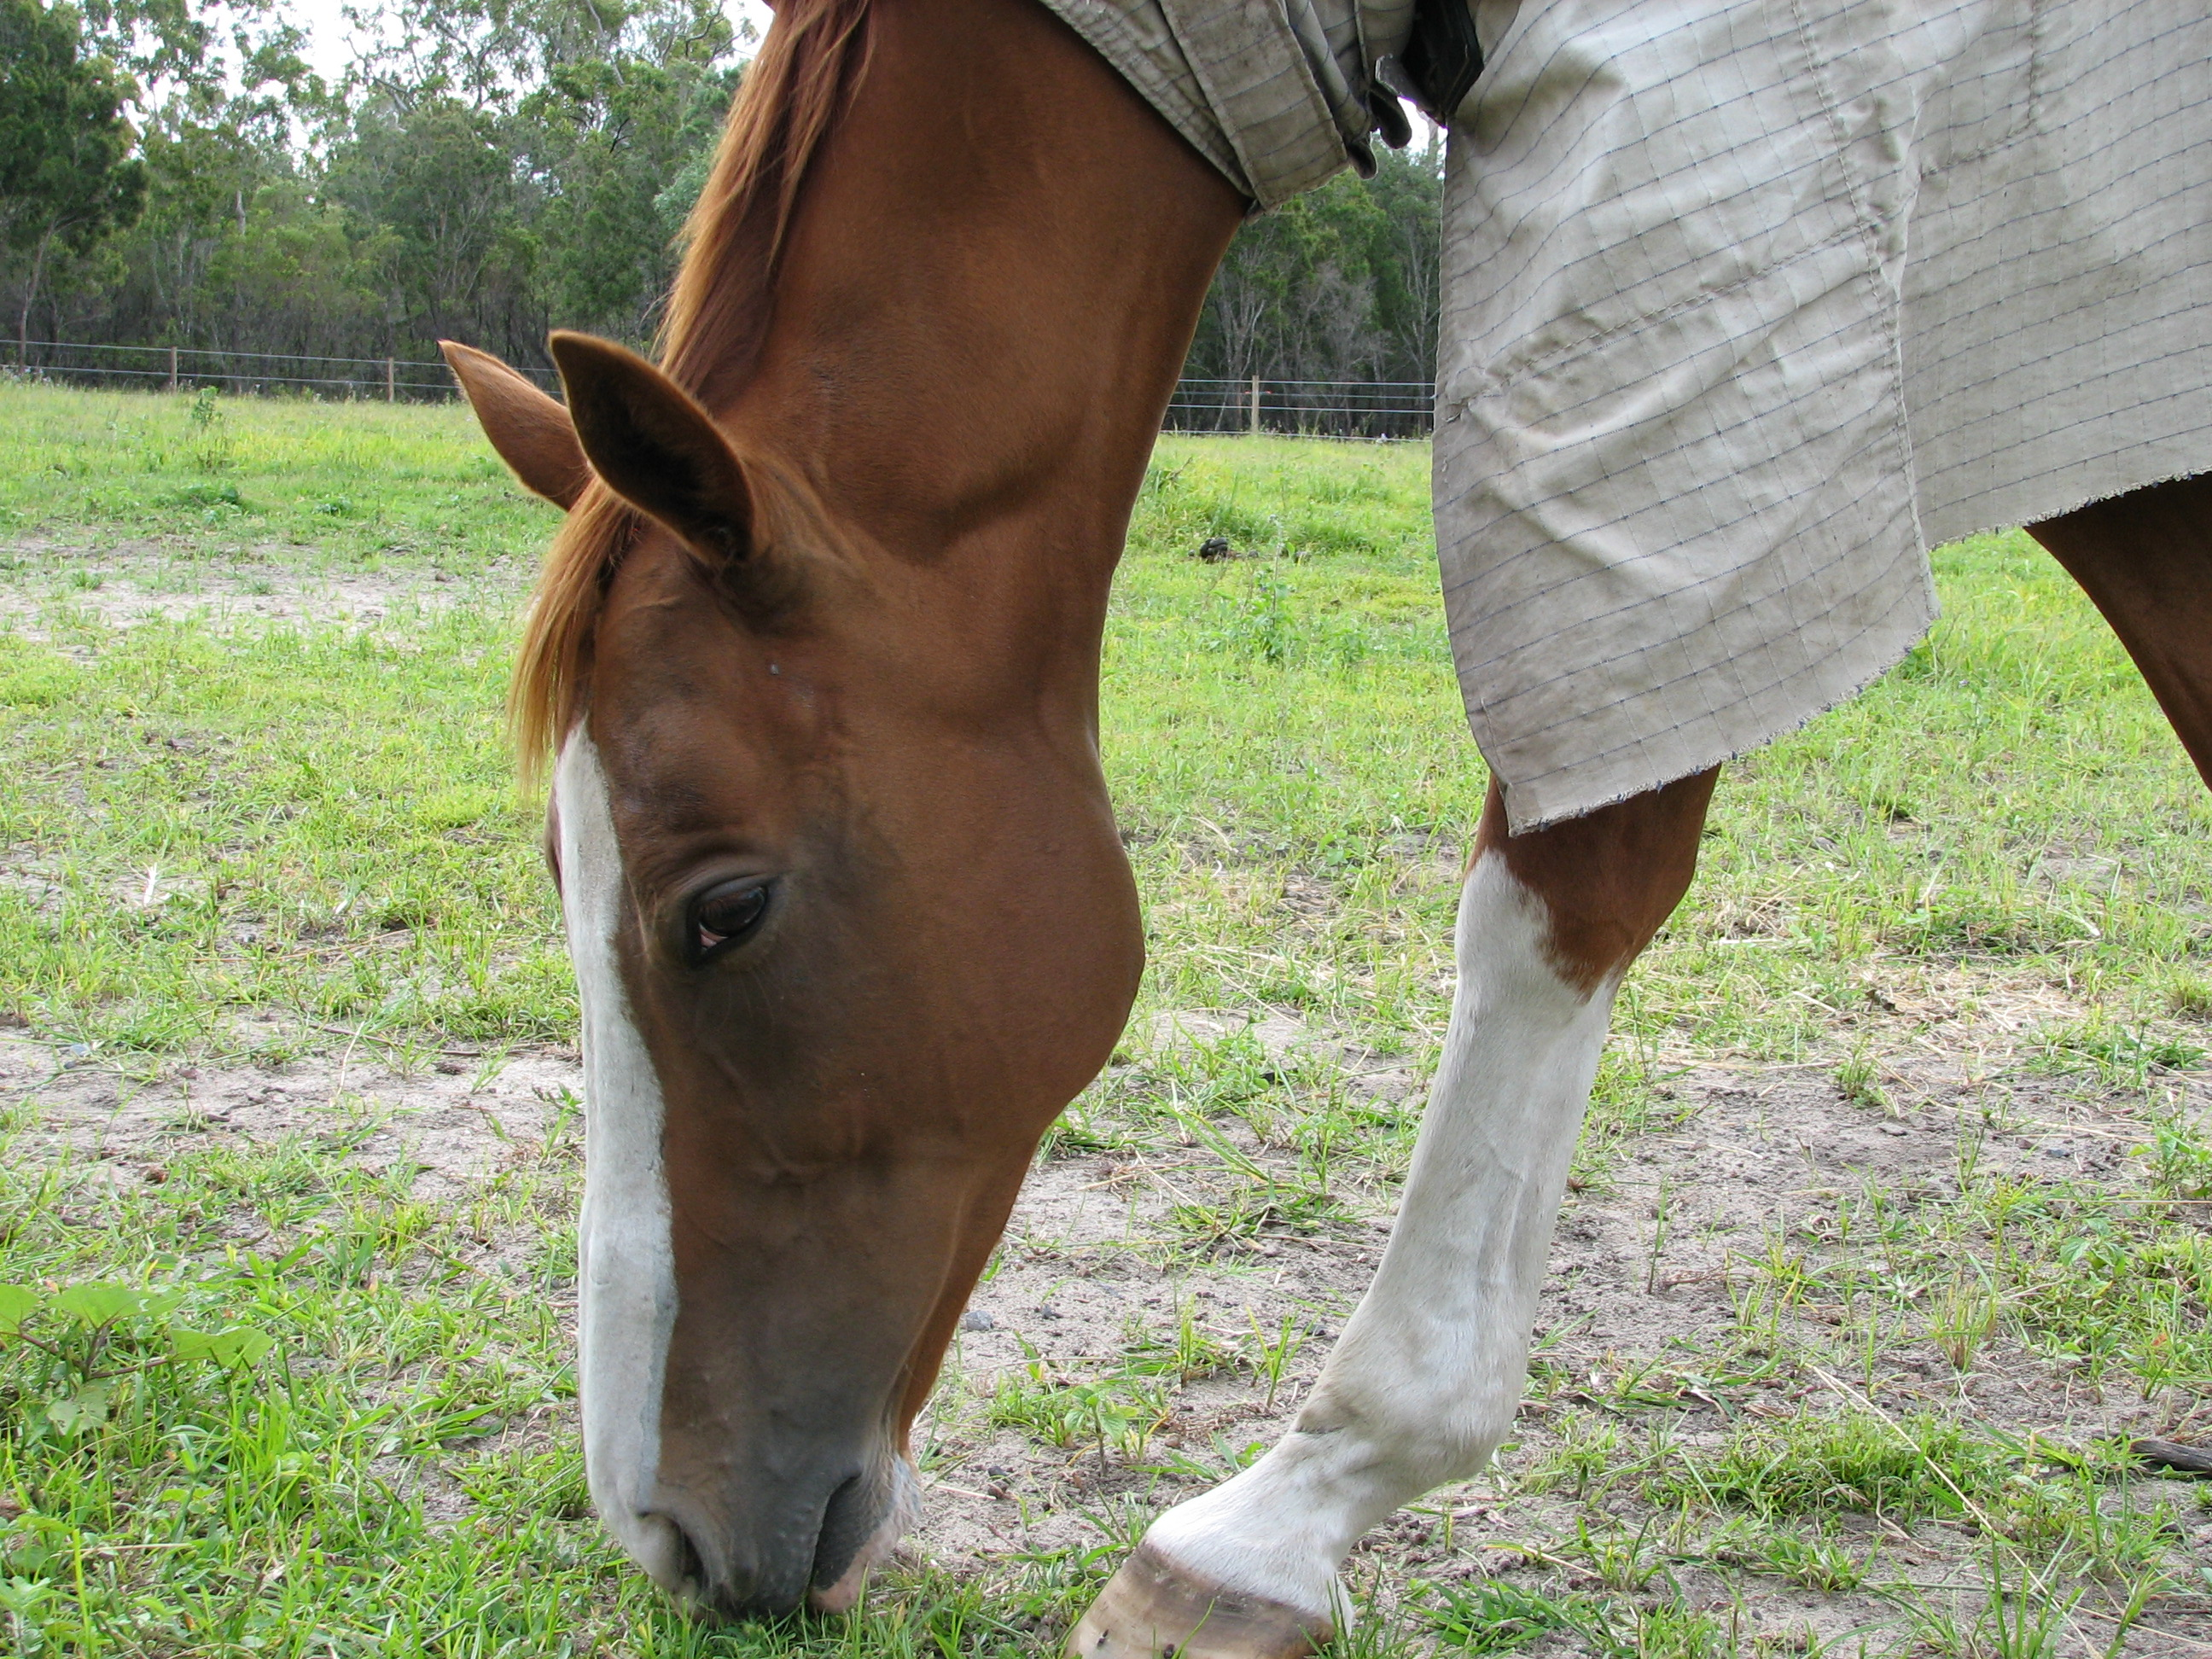 an analysis of the equine herpes virus 1 in horses